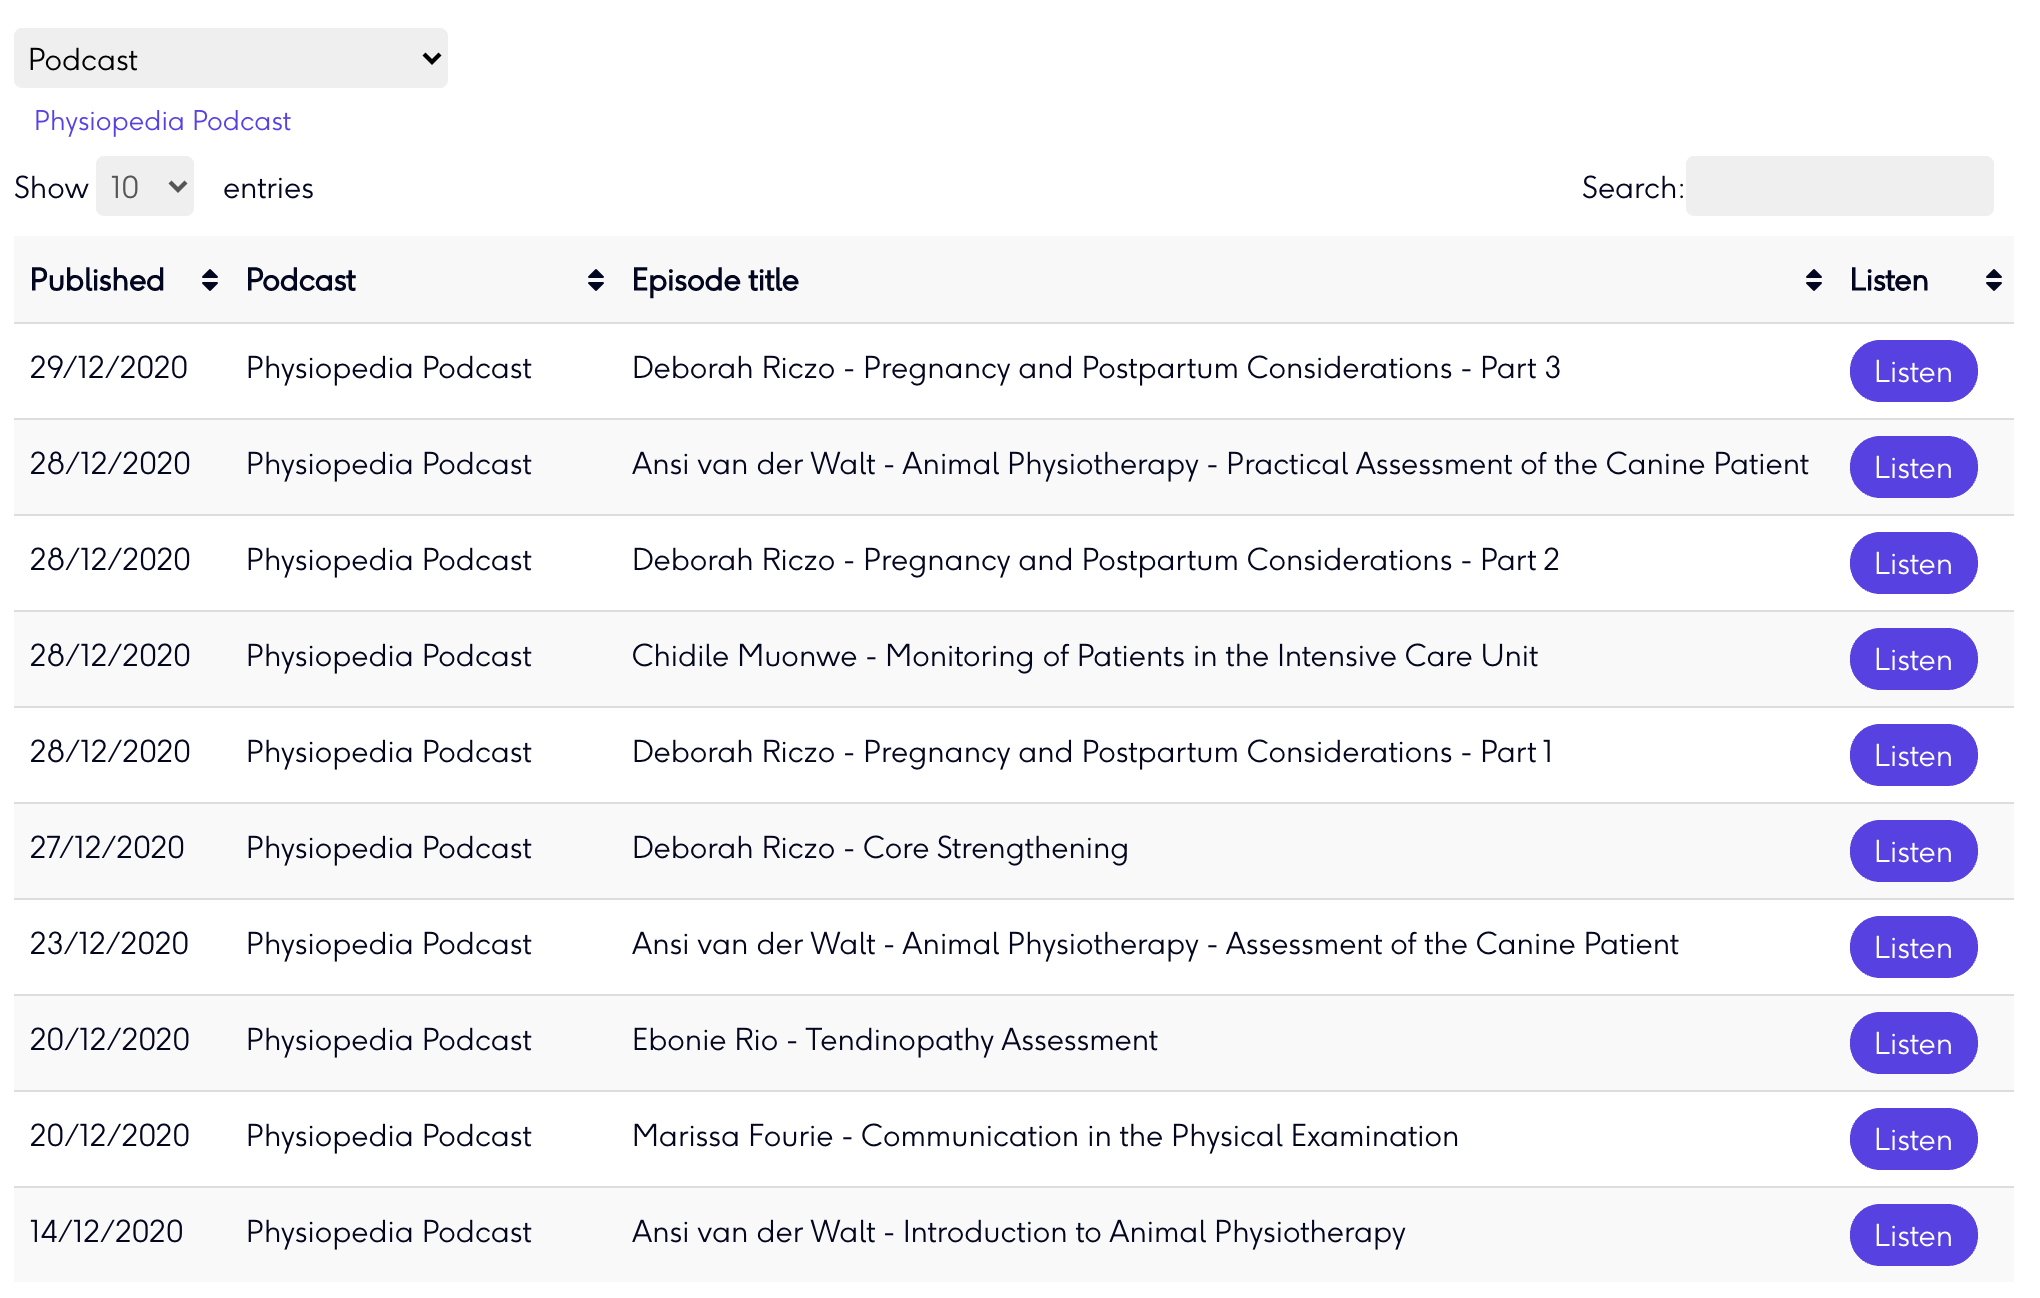 Physiopedia podcasts for physiotherapy and physical therapy